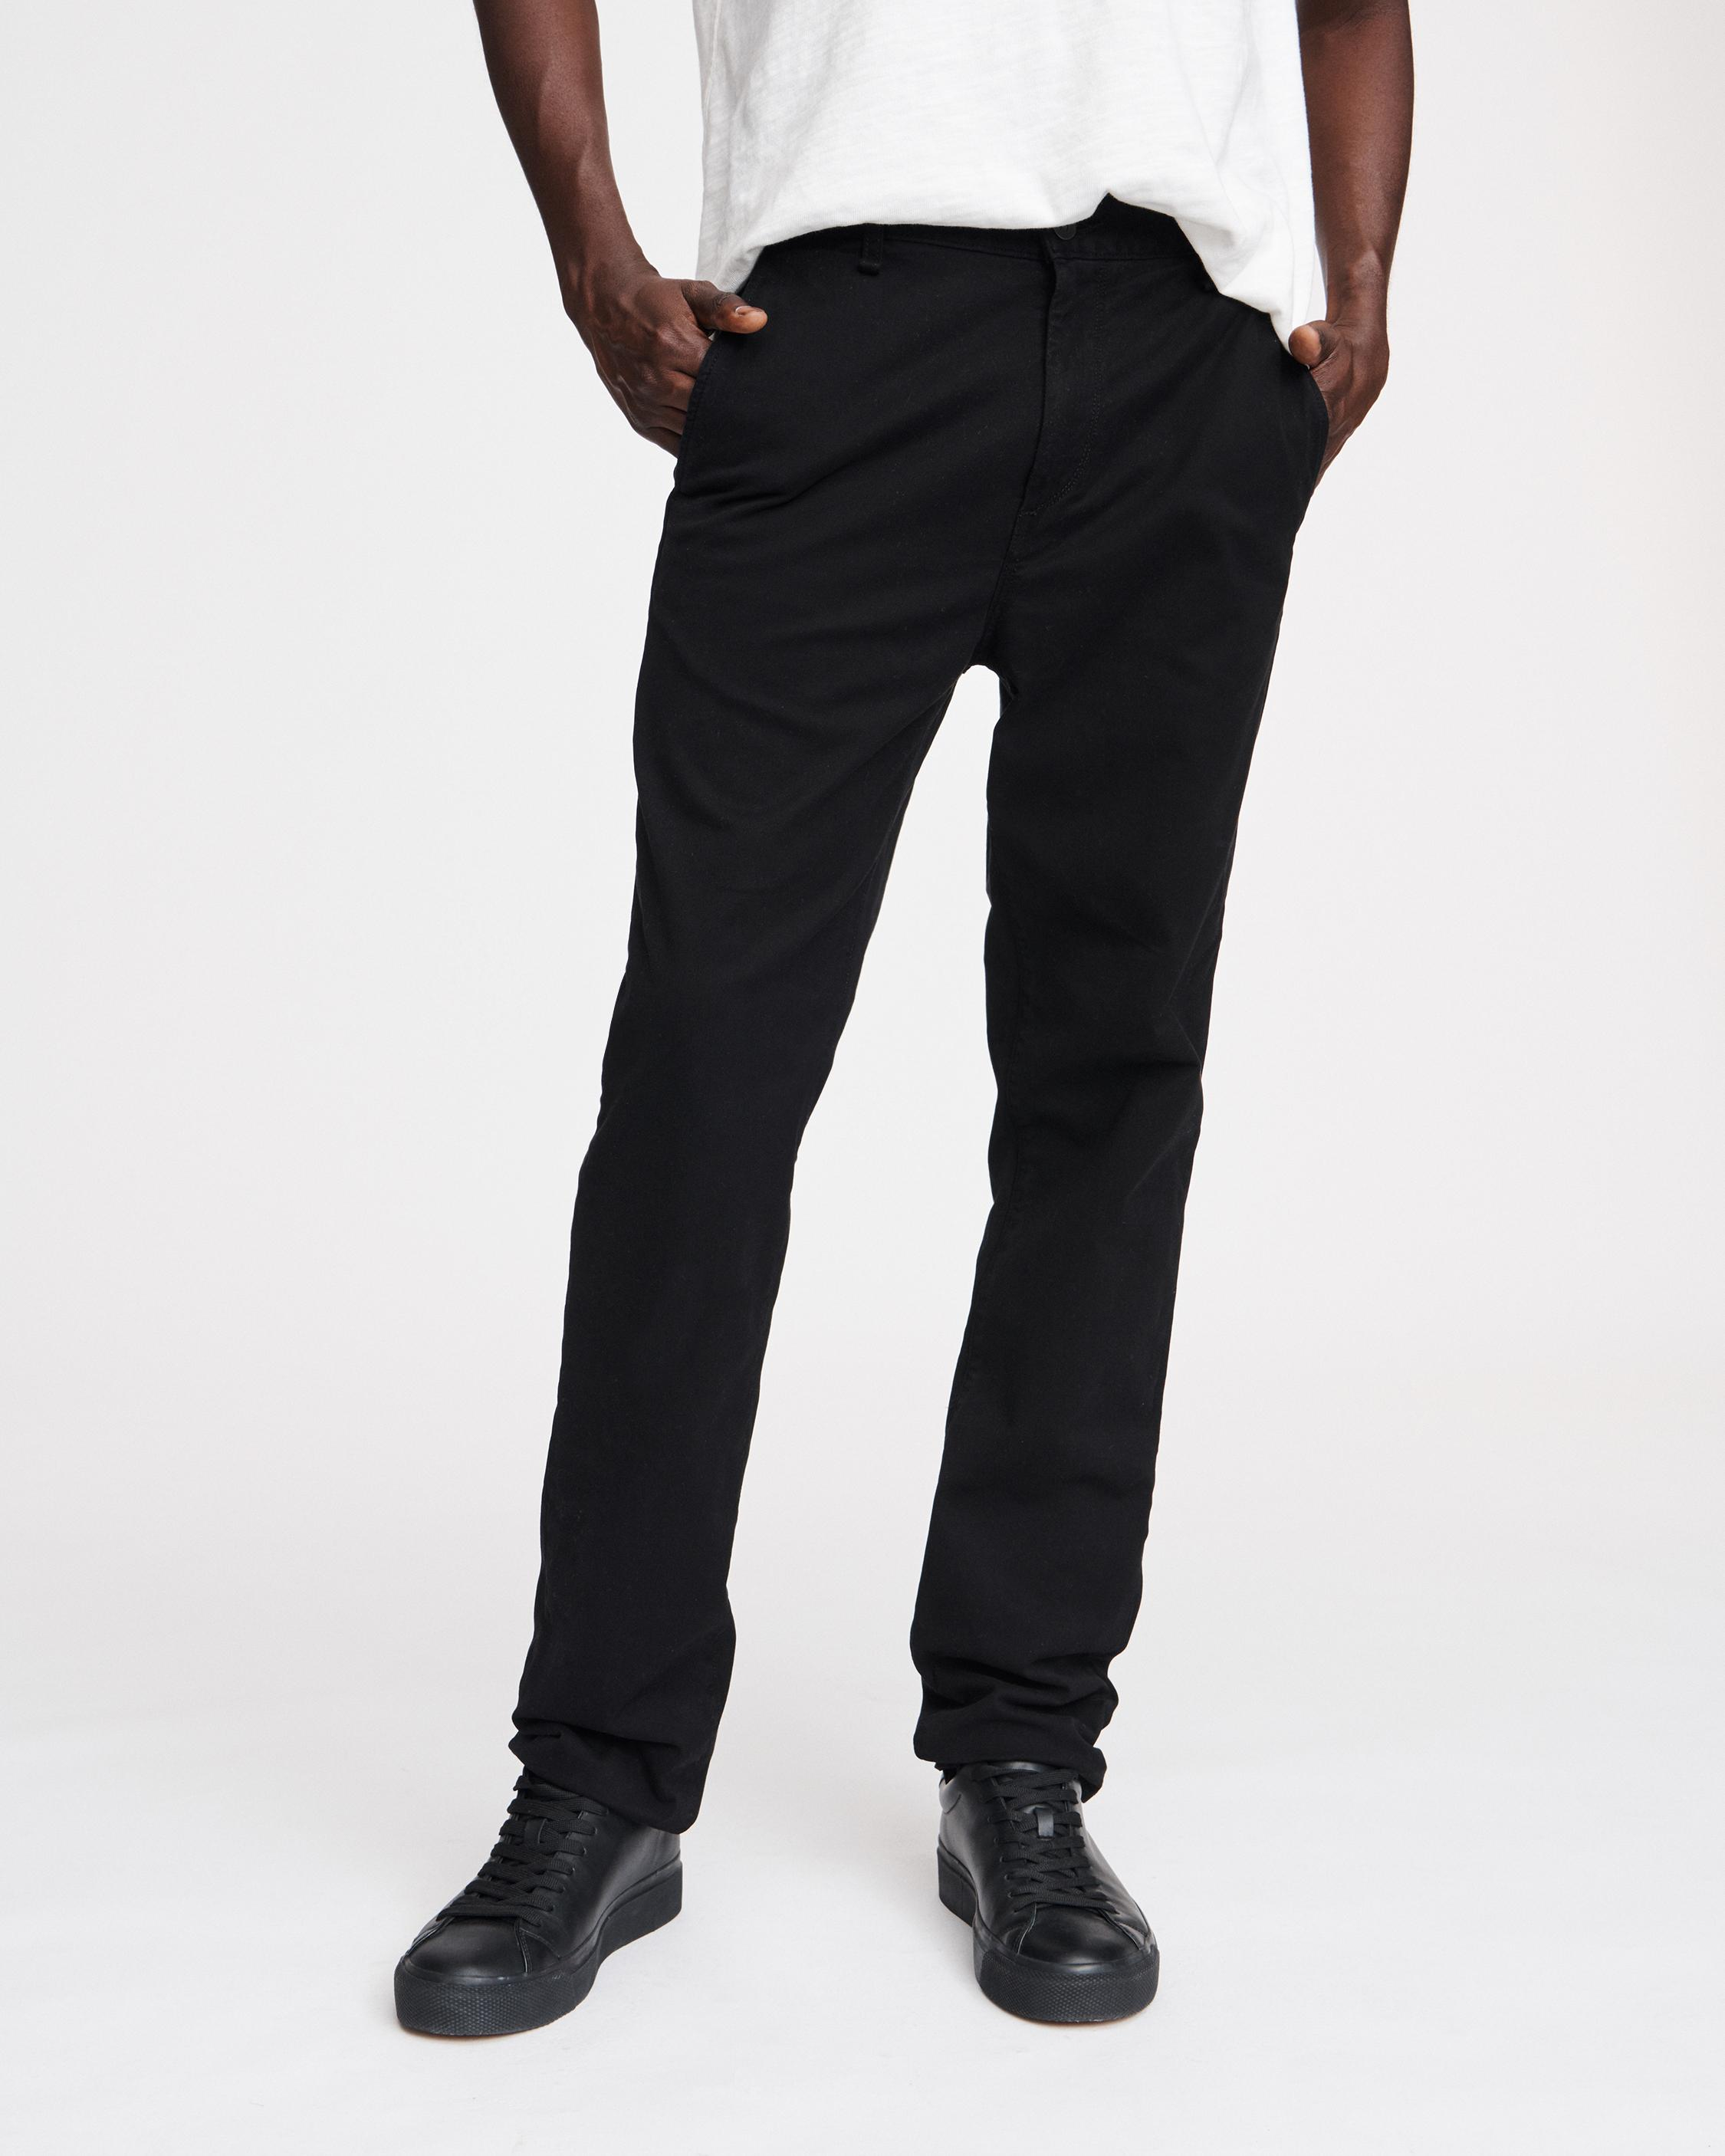 FIT 3 CLASSIC CHINO